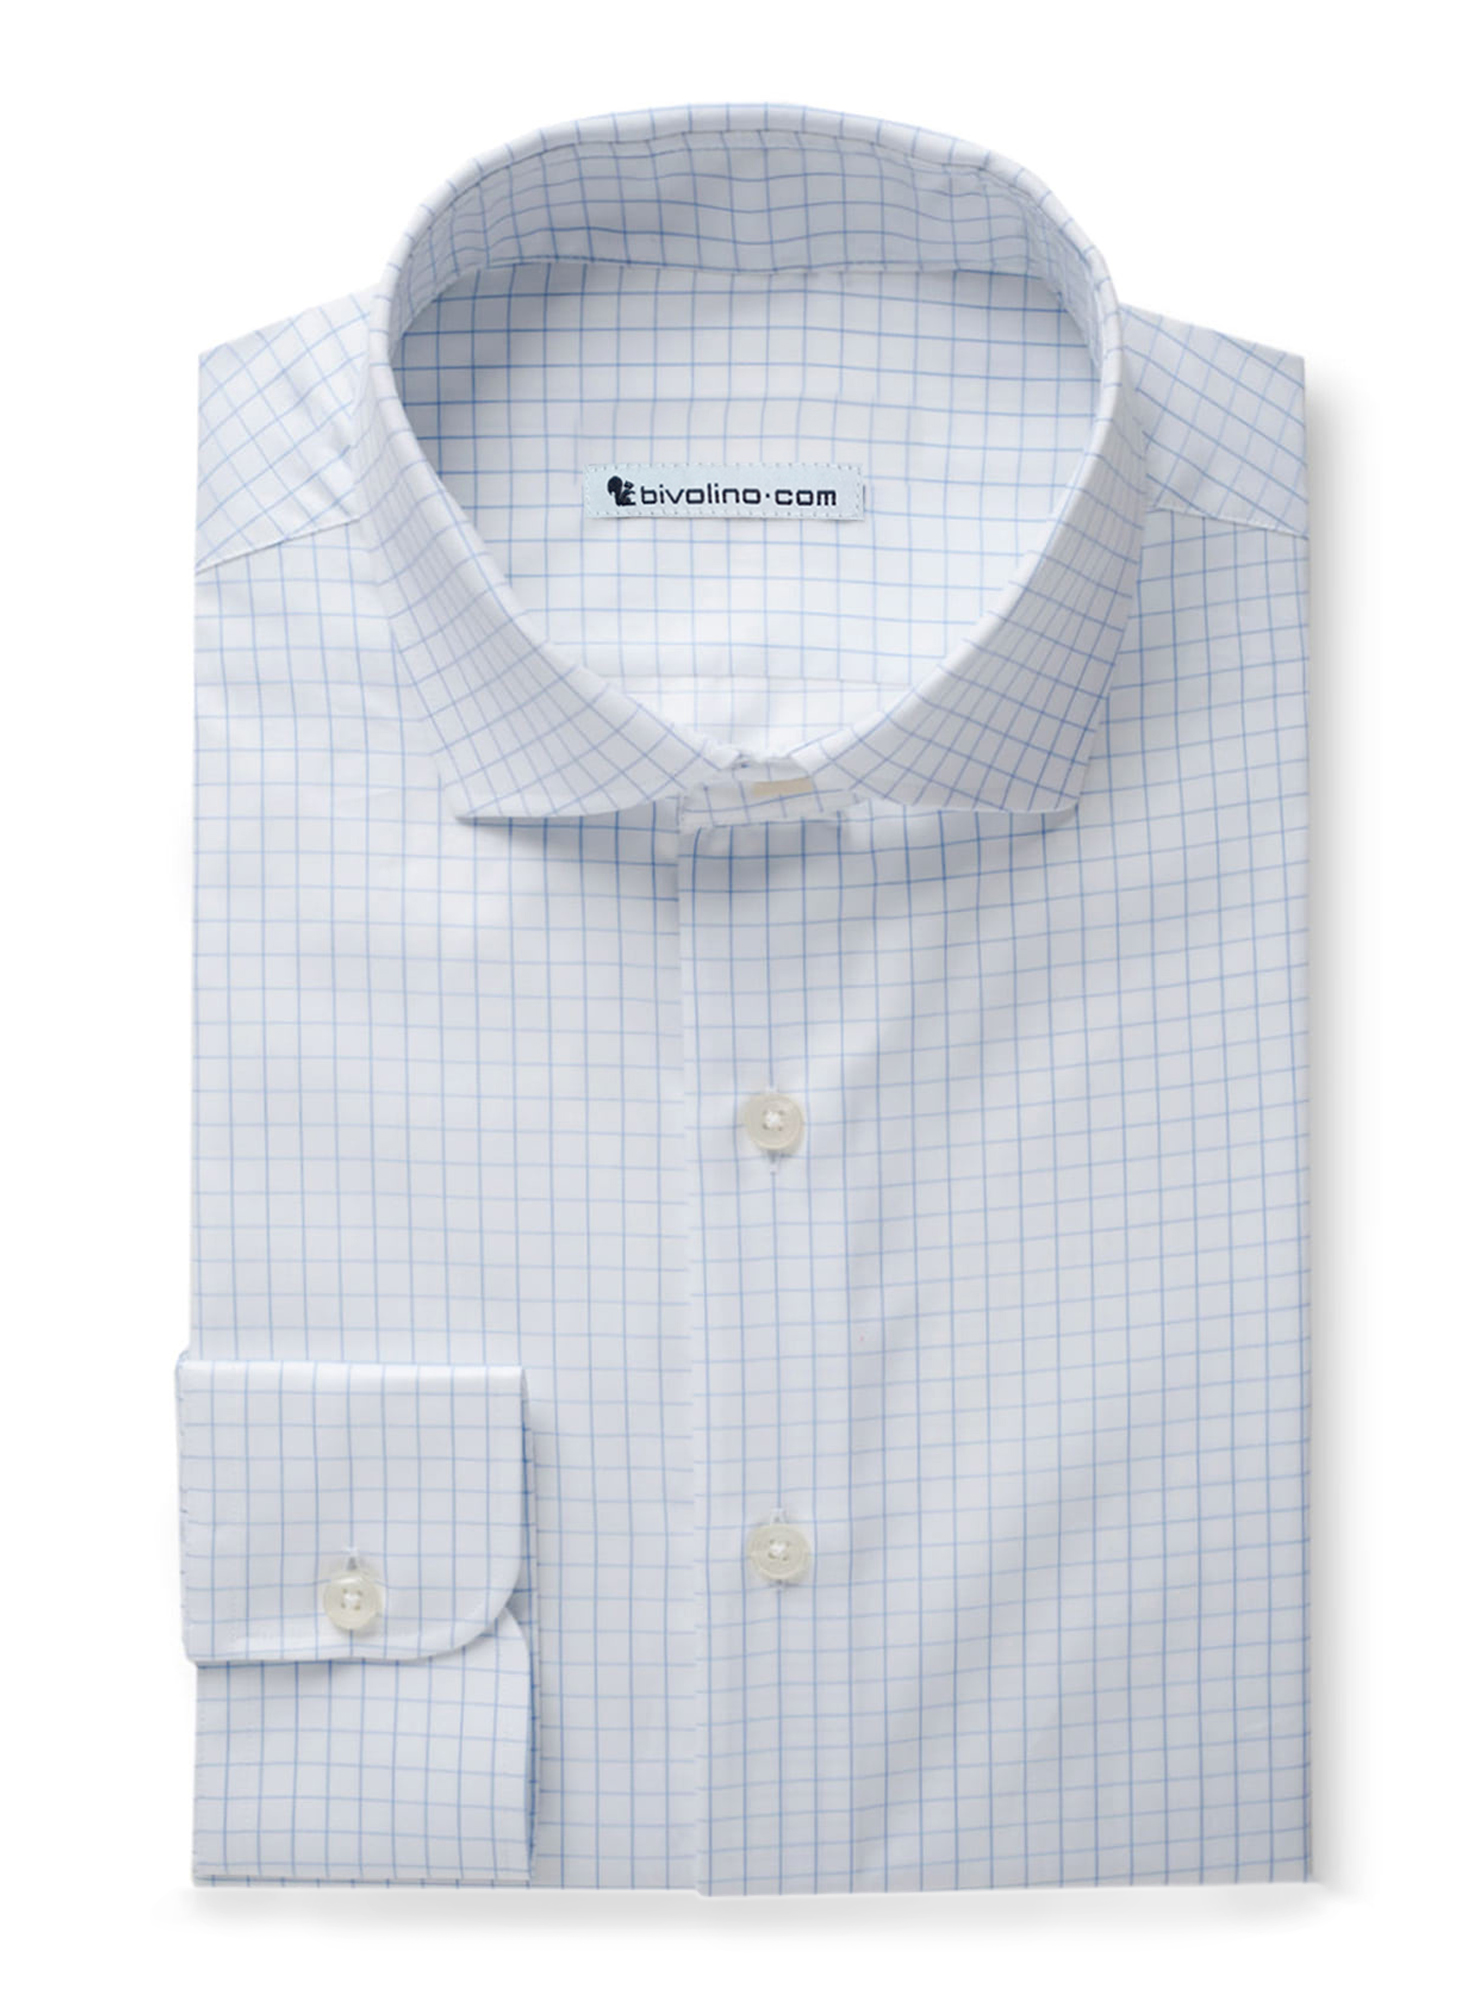 PISATINO - Sky blue check twill shirt - DARCI 4